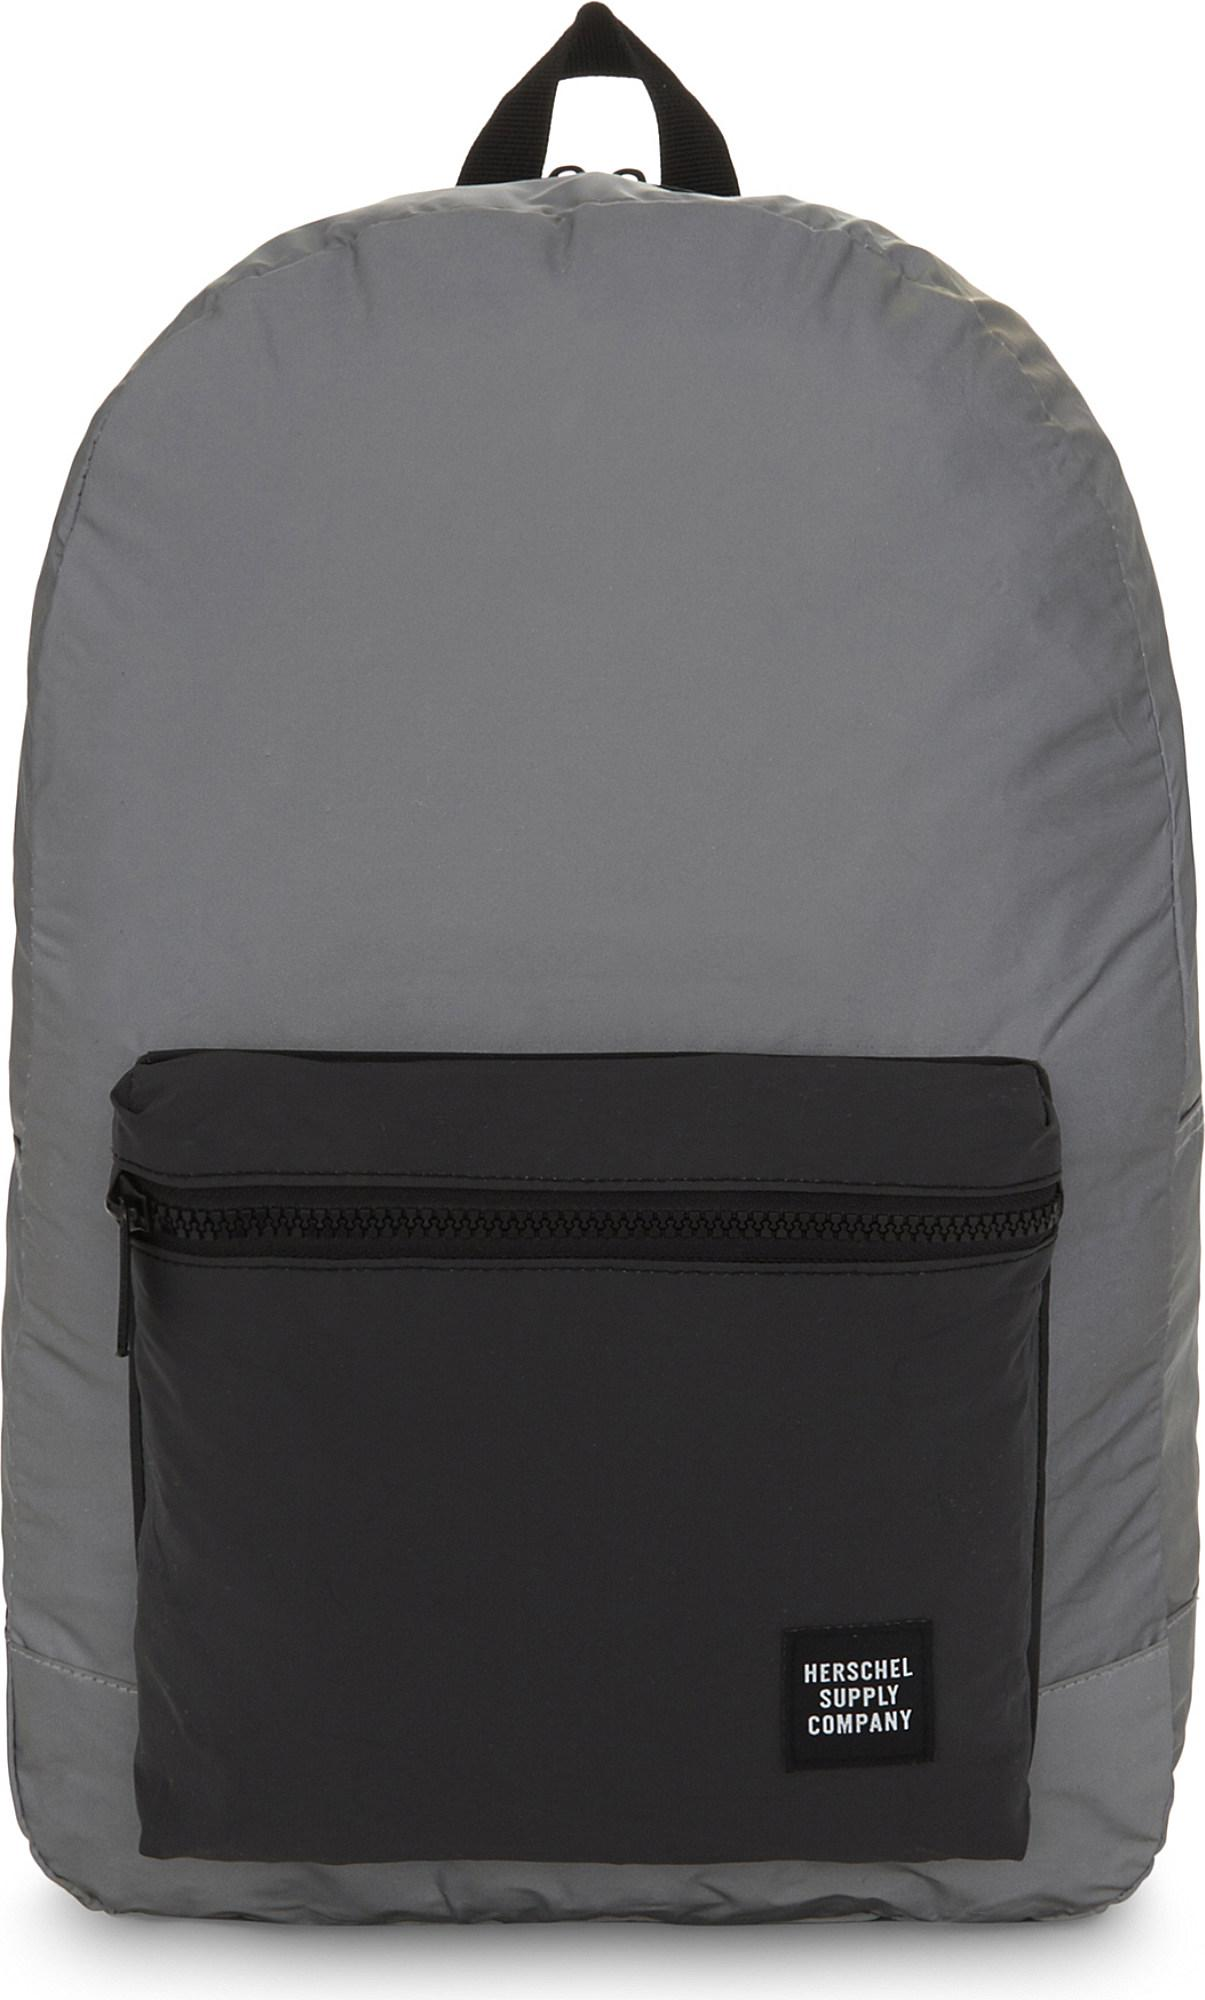 Lyst - Herschel Supply Co. Day night Packable Daypack Reflective ... 5054fa42114b1